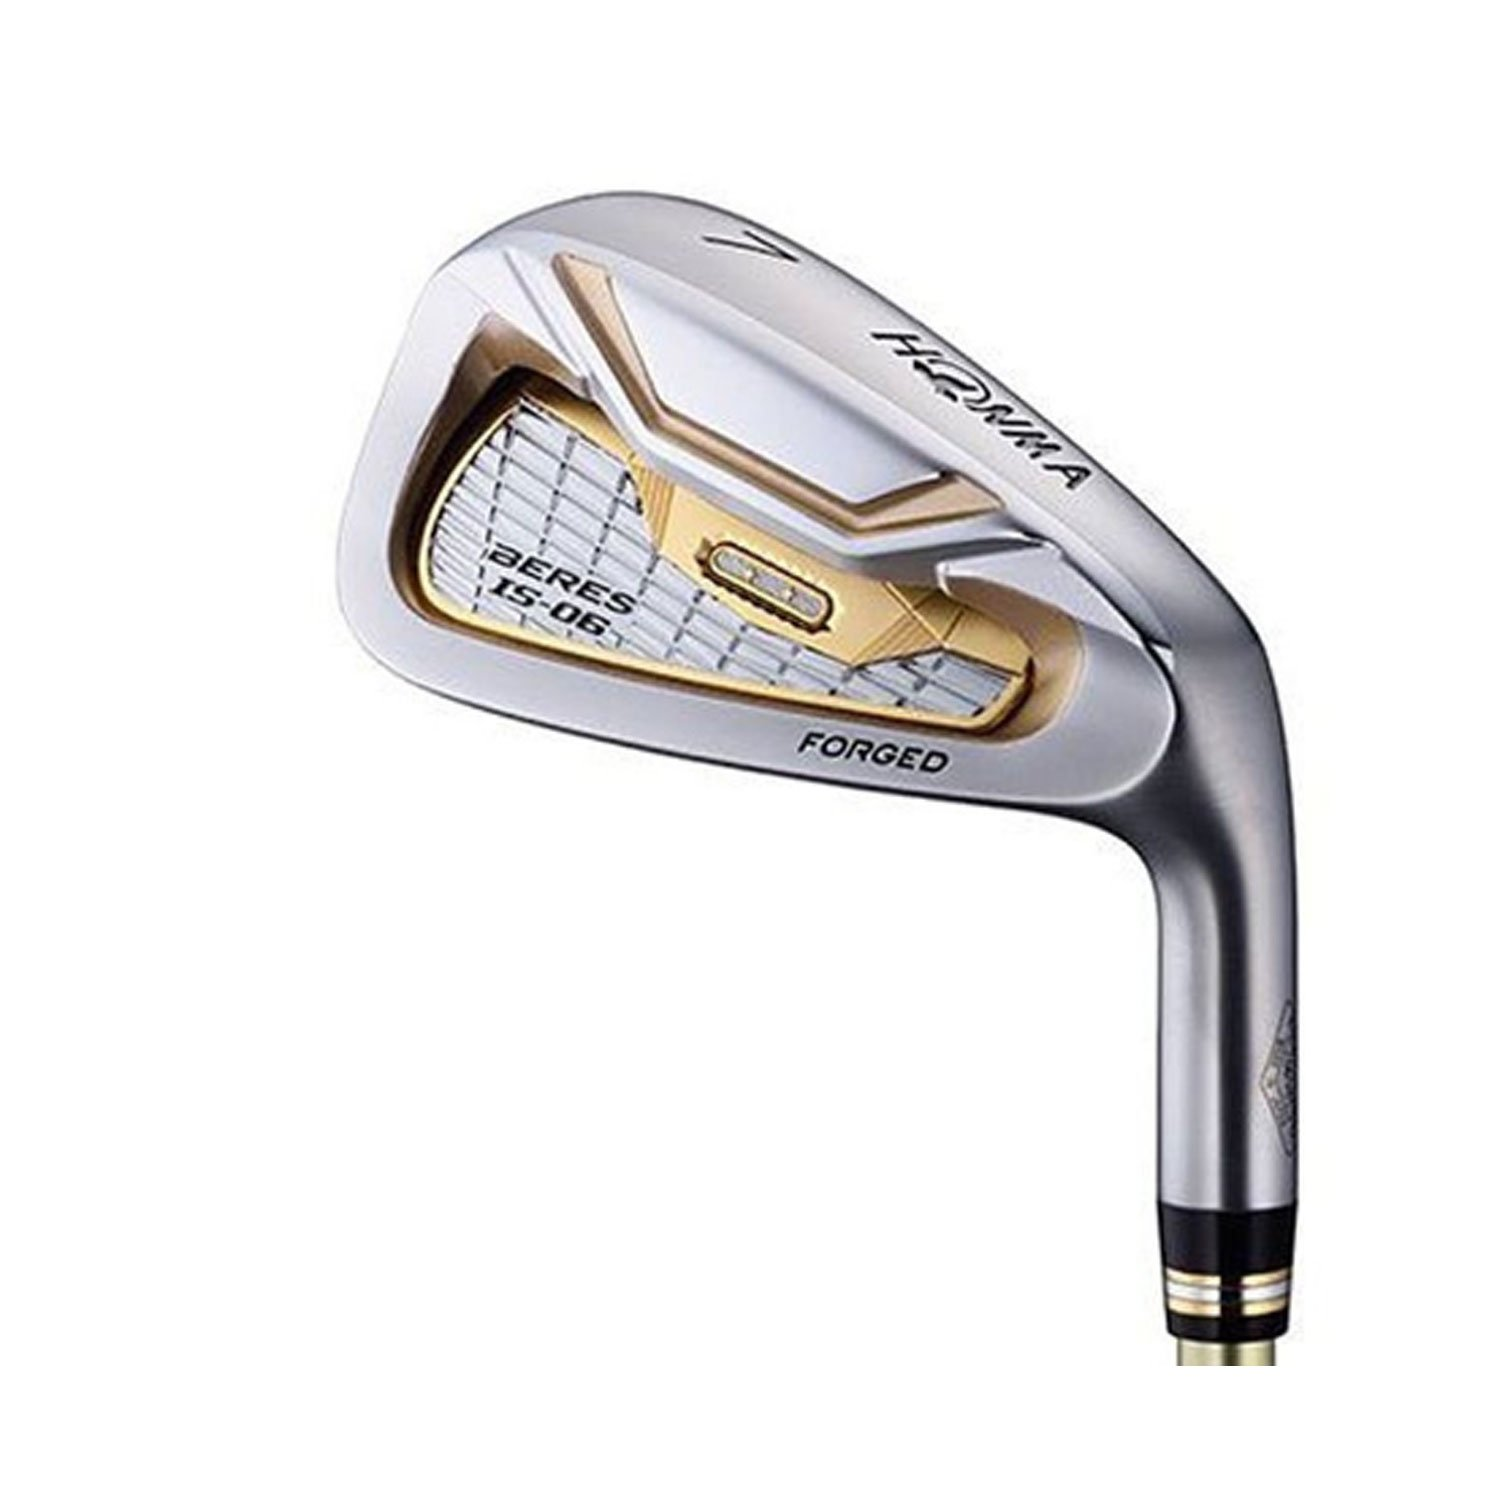 HONMA IS-06 Iron Set 2018 Right 6-11 ARMRQ X 47 2-Star Graphite Regular